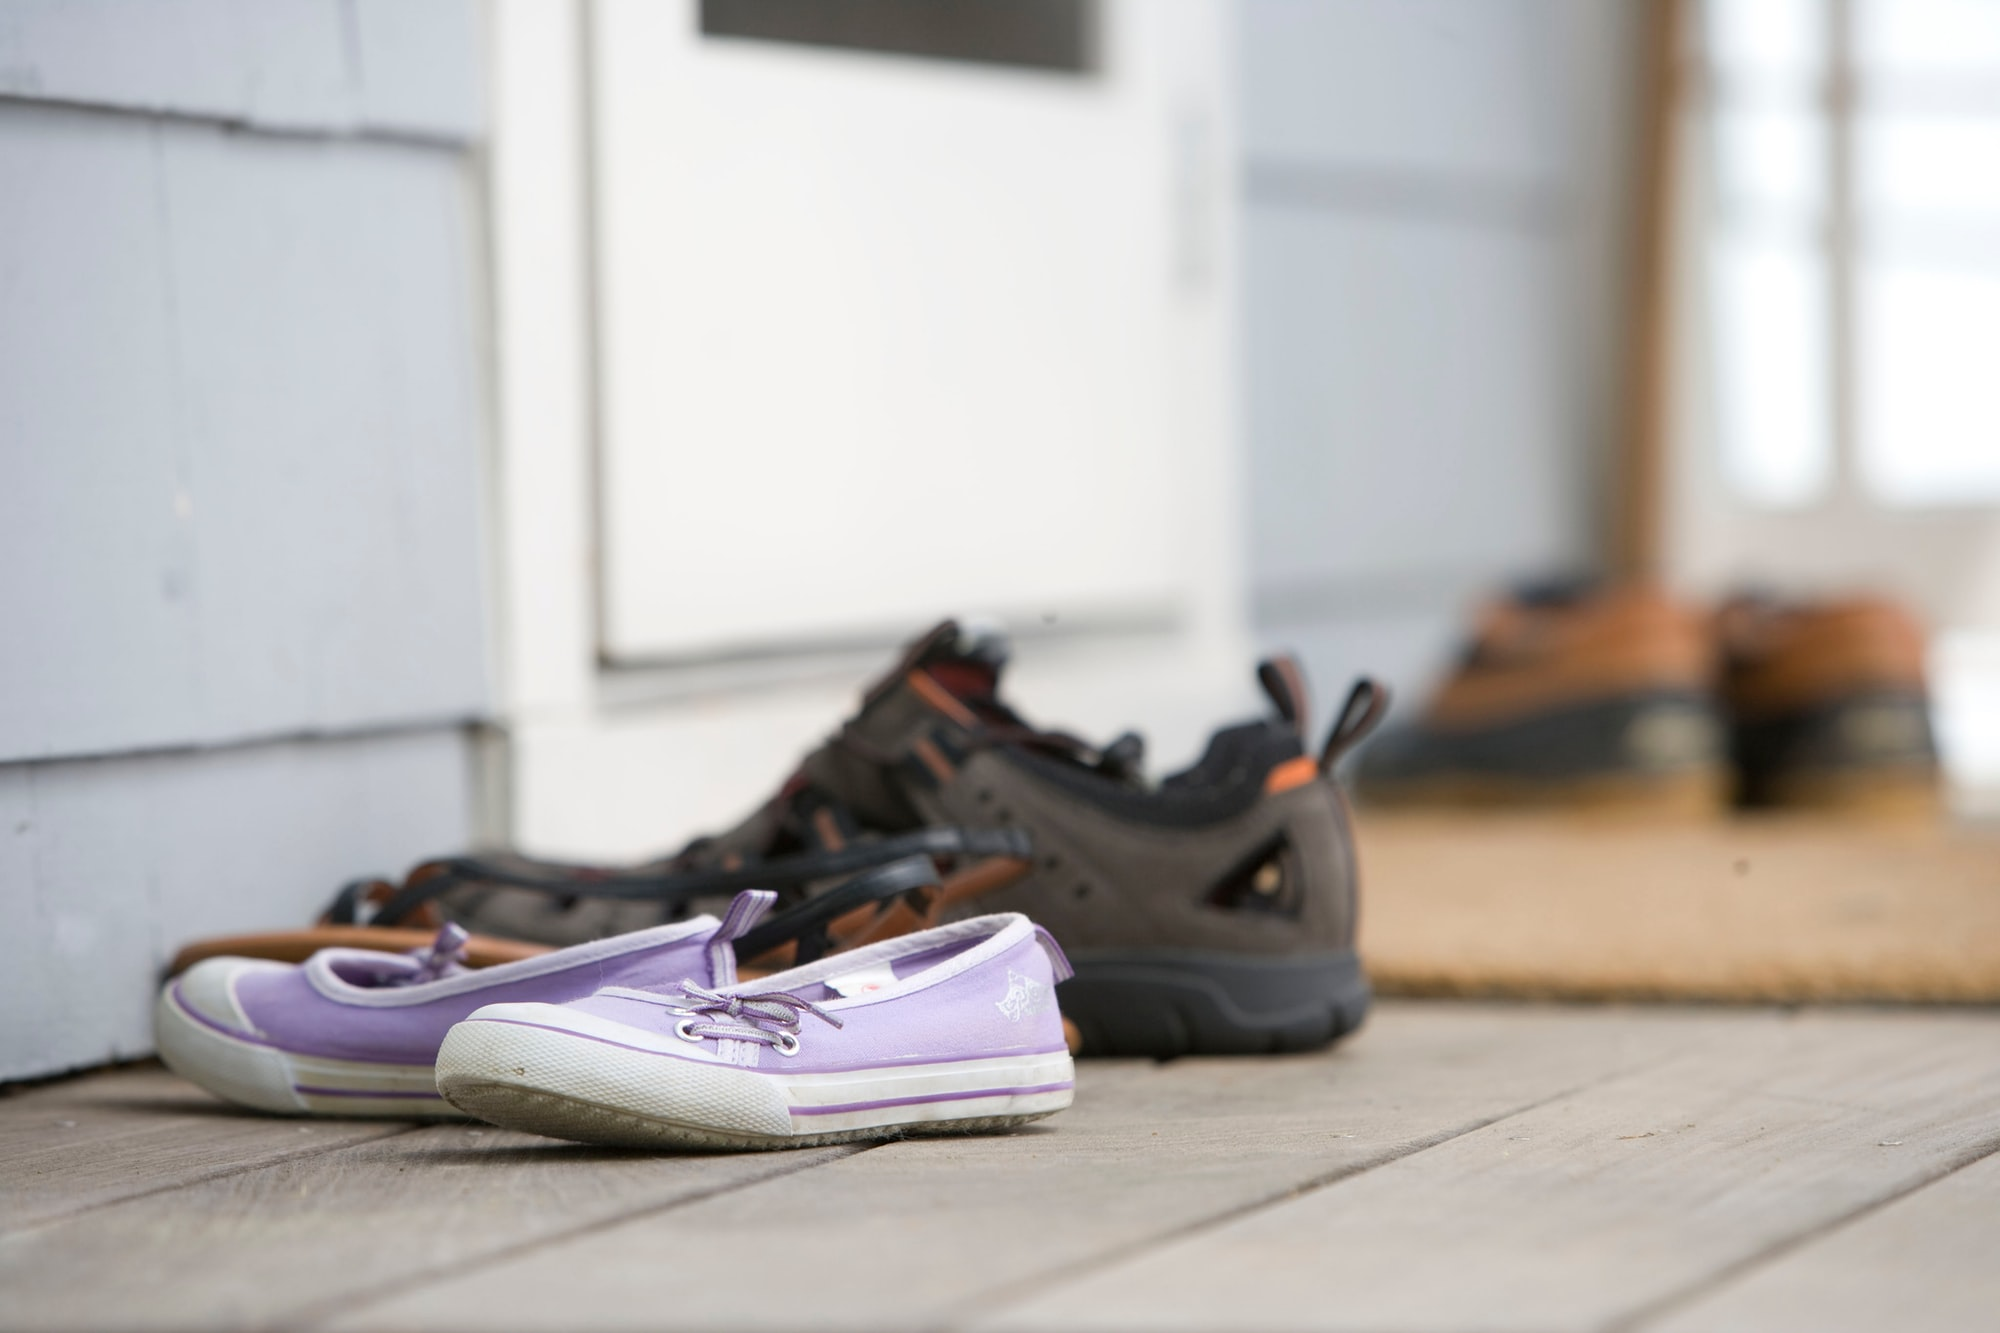 Outdoor contaminants such as pollutants and airborne particulates, always seem to find their way into even the cleanest homes. Keeping a home's interior free of such irritants, including allergens, dust, and pesticides, means leaving contaminated clothing at the door. In this particular photograph, four pairs of footwear had been left on the front porch so as to not track attached particulates into this house. Note that in this particular instance there is a door matt upon which one can wipe his, or her feet, prior to entering the home.